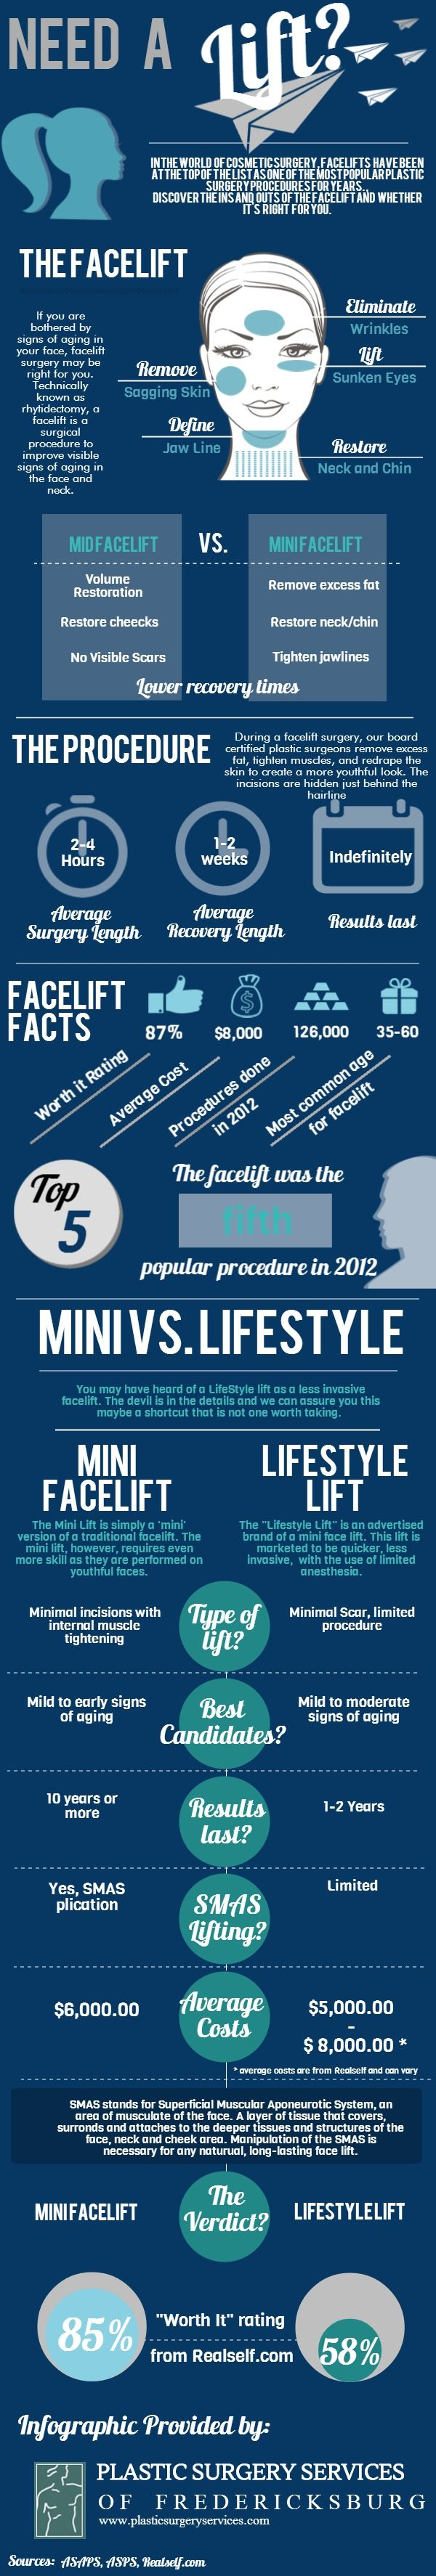 Facelifit, mid-facleift, mini-facelift this infographic explains well the different procedures.